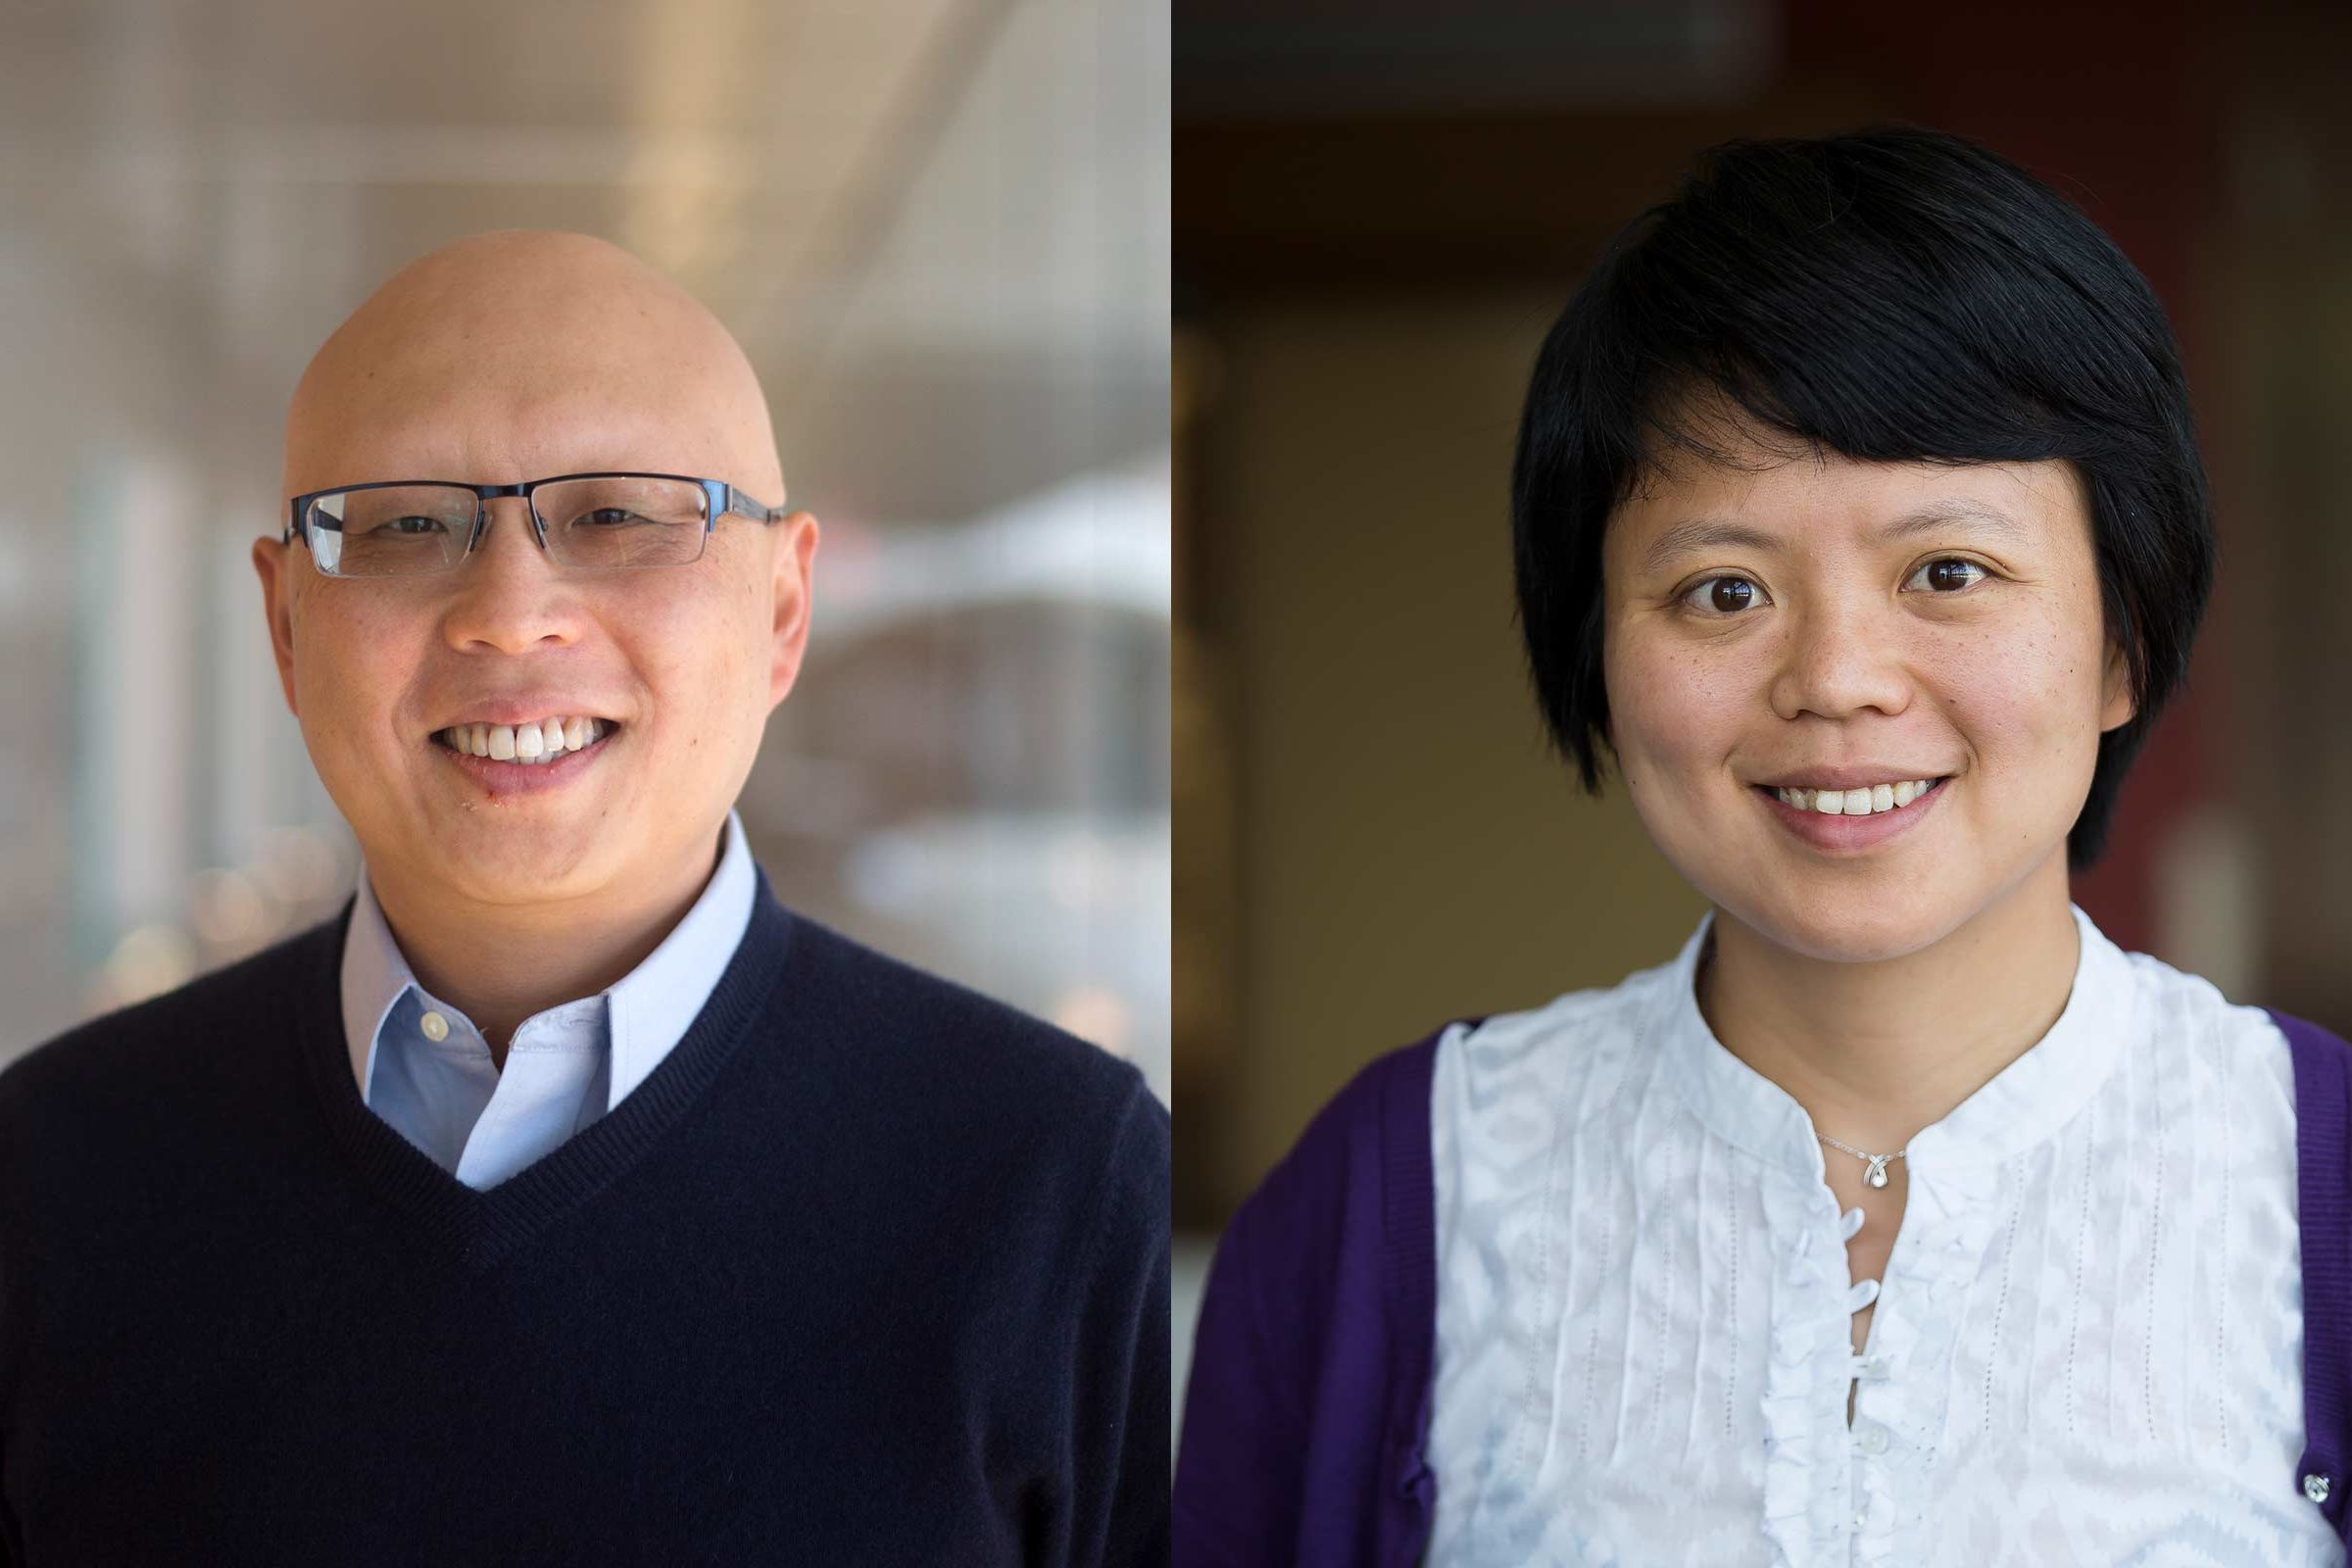 Siqian Shen and Yafeng Yin receive funding for route planning for Didi